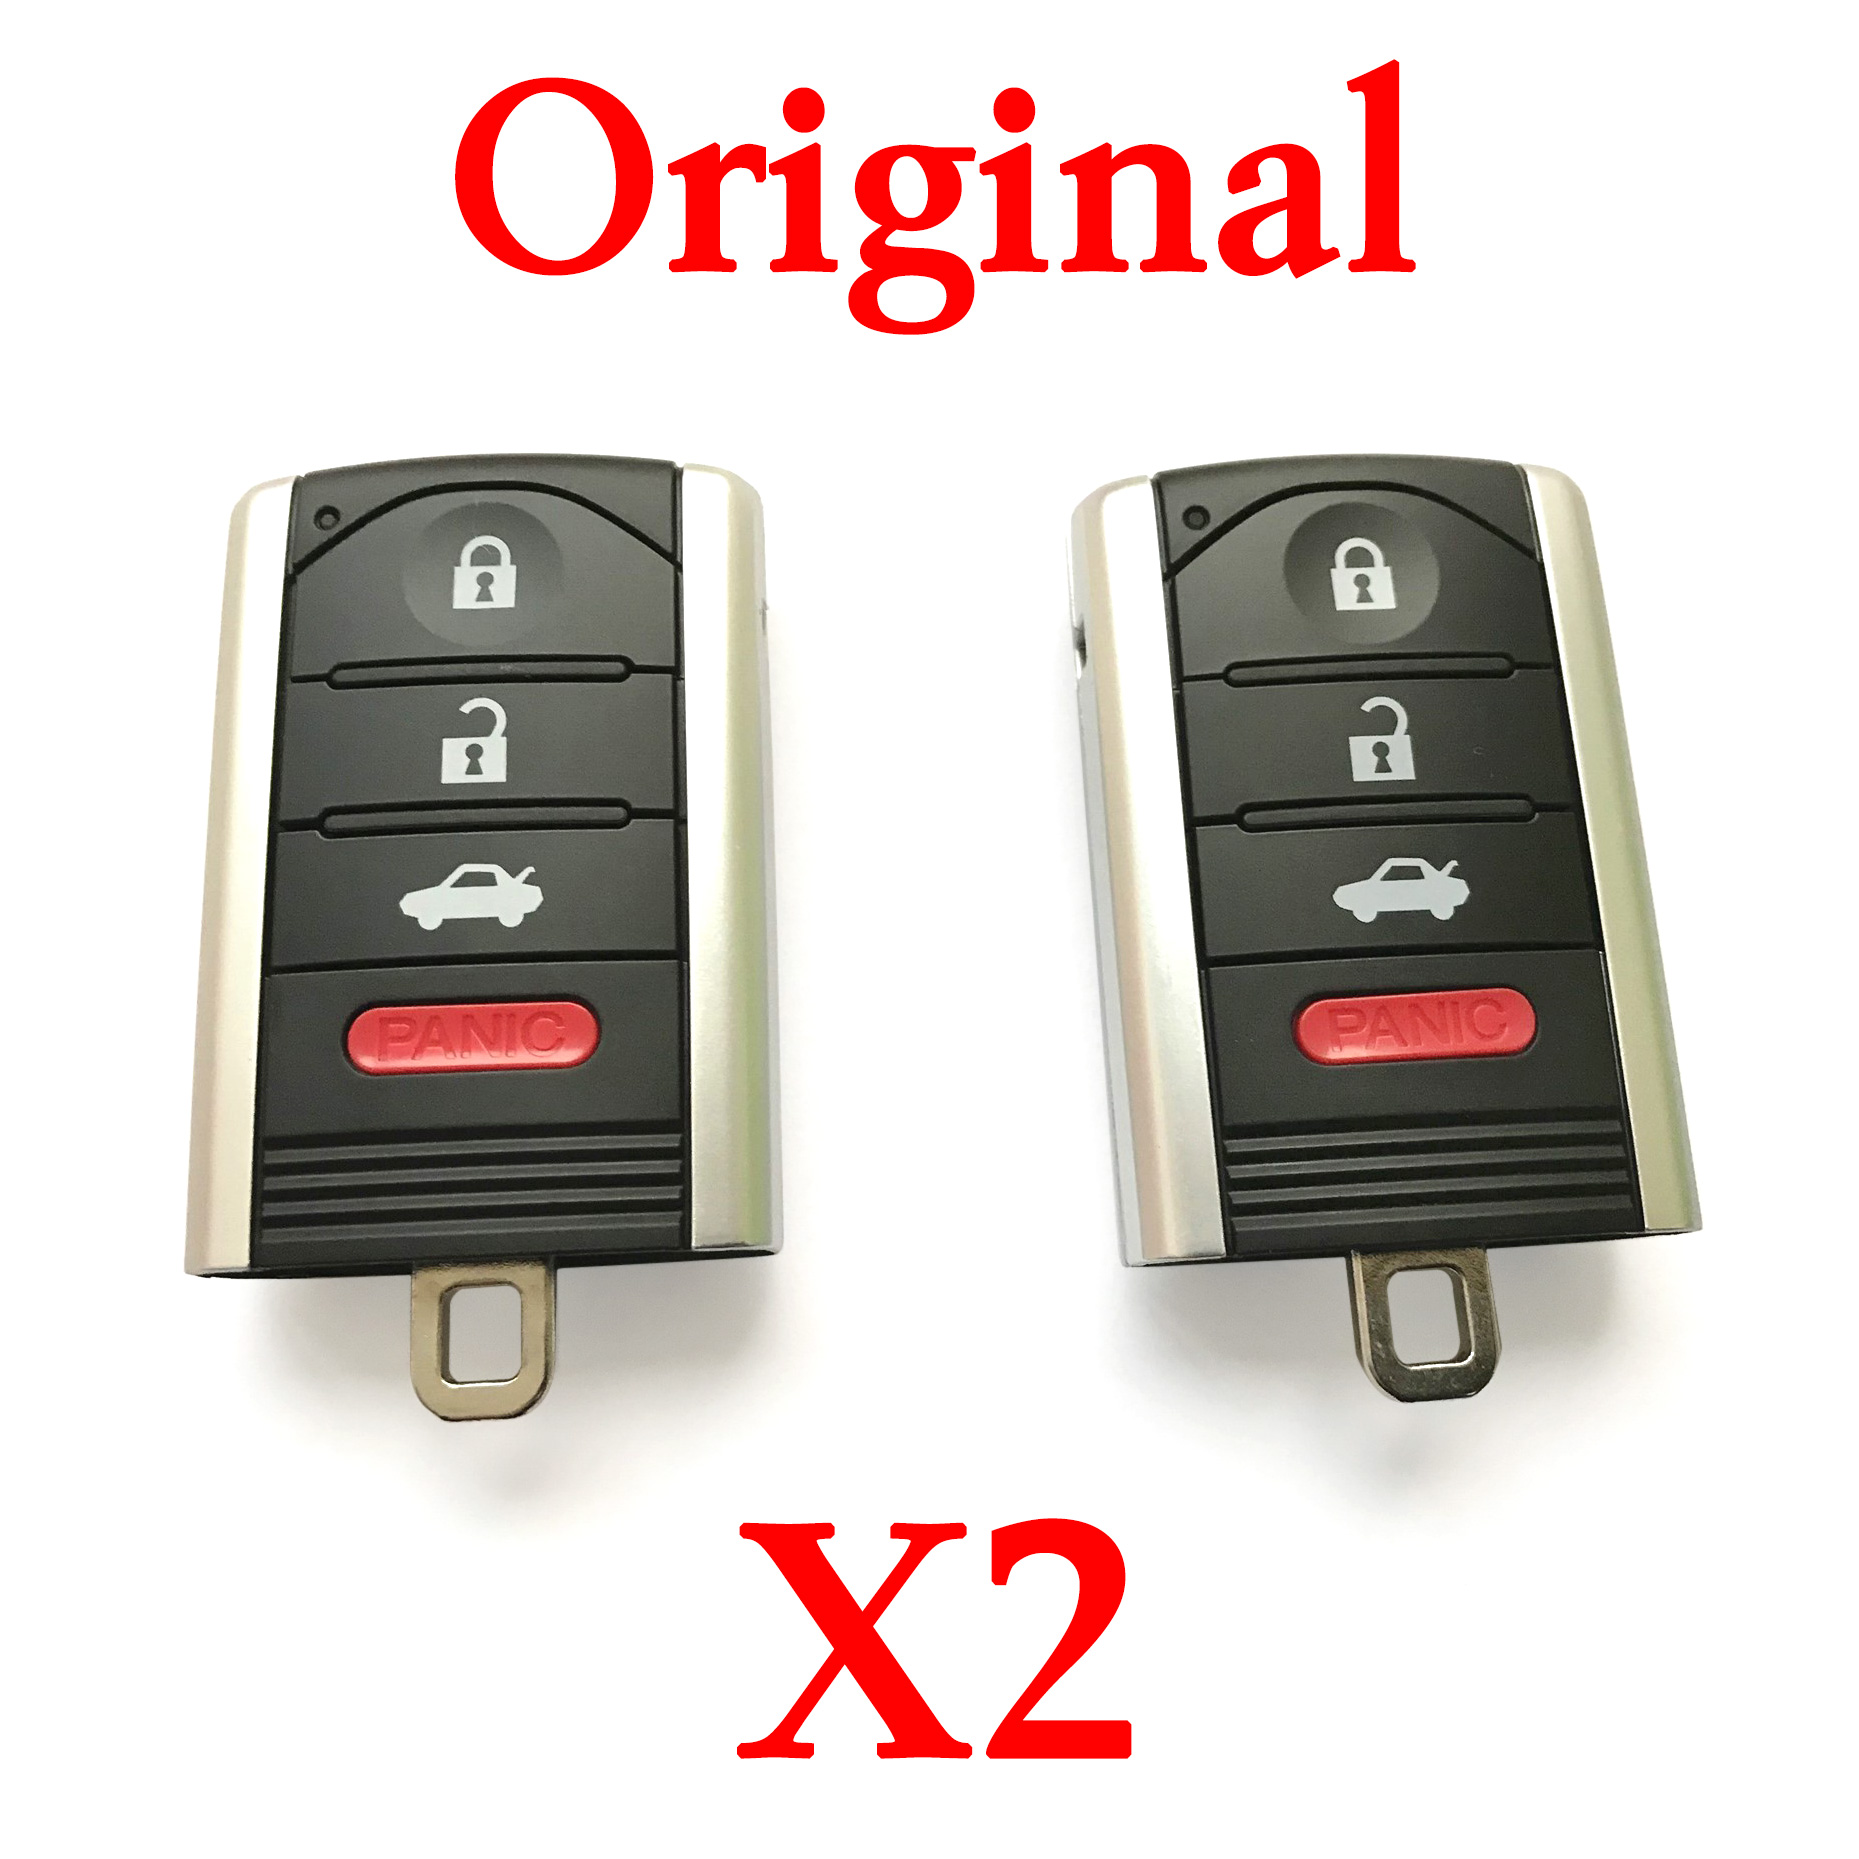 2 pieces Original 313.8 MHz 3+1 Buttons Smarrt Key for 2013-2015 Acura ILX - KR5434760 ( Driver 1 & Driver 2) (OEM)